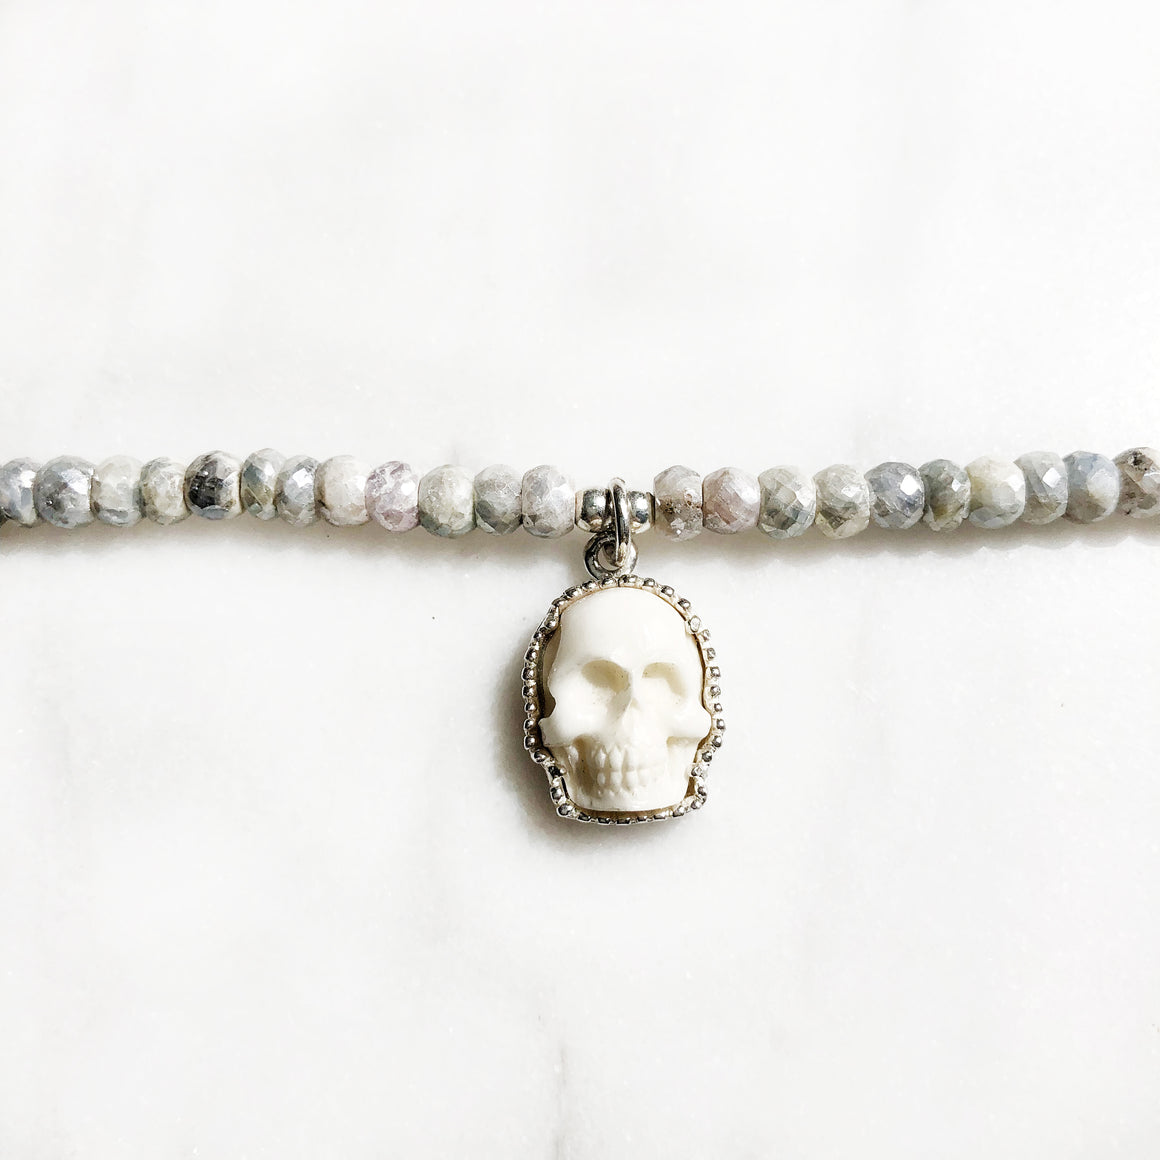 Bone Skull & Silverite Choker Necklace